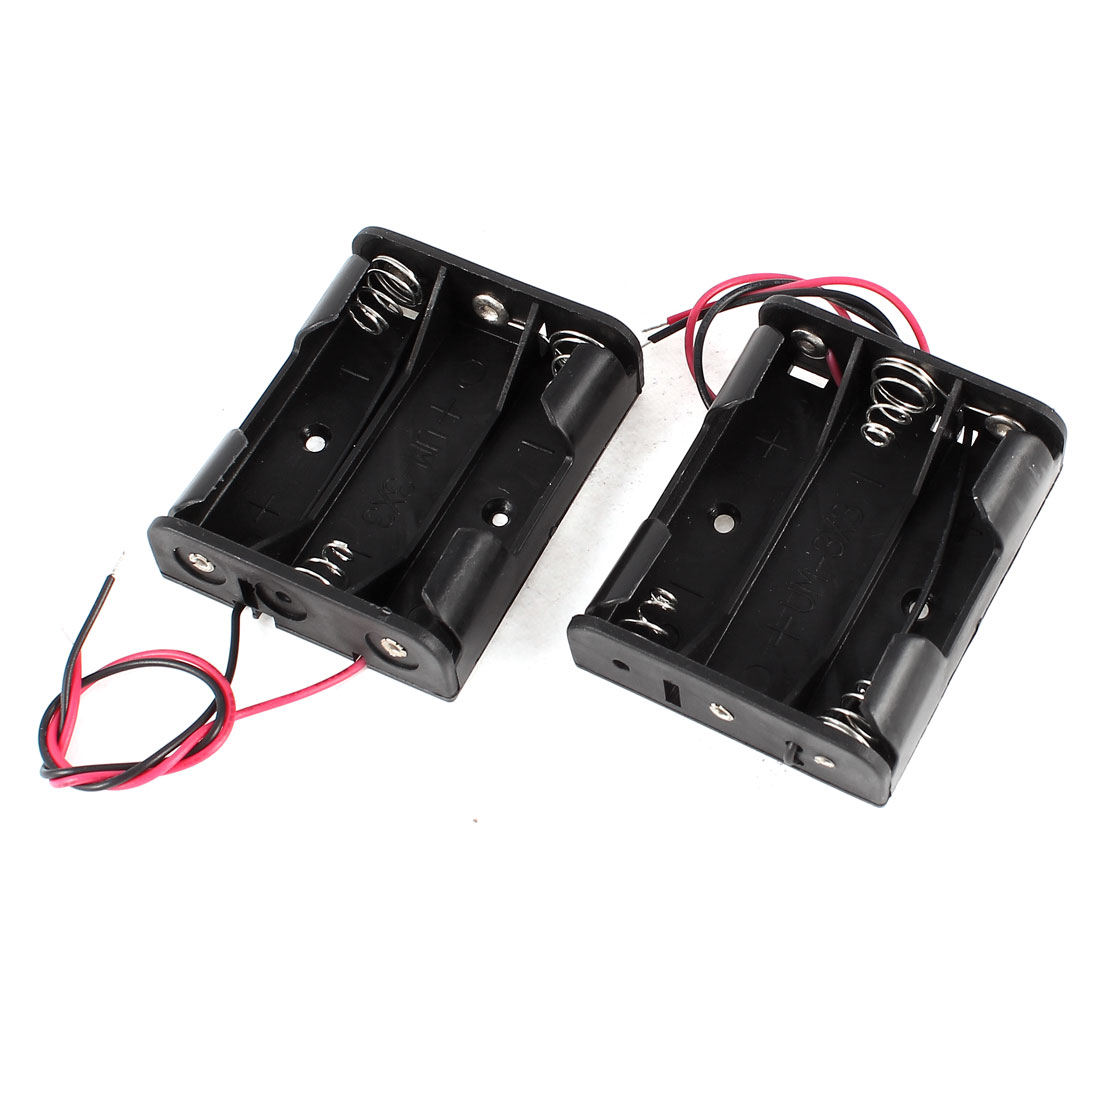 2 Pcs Open Frame Spring Loaded Double Wired Plastic Shell 3 x 1.5V AA Battery Holder Case Storage Cell Box